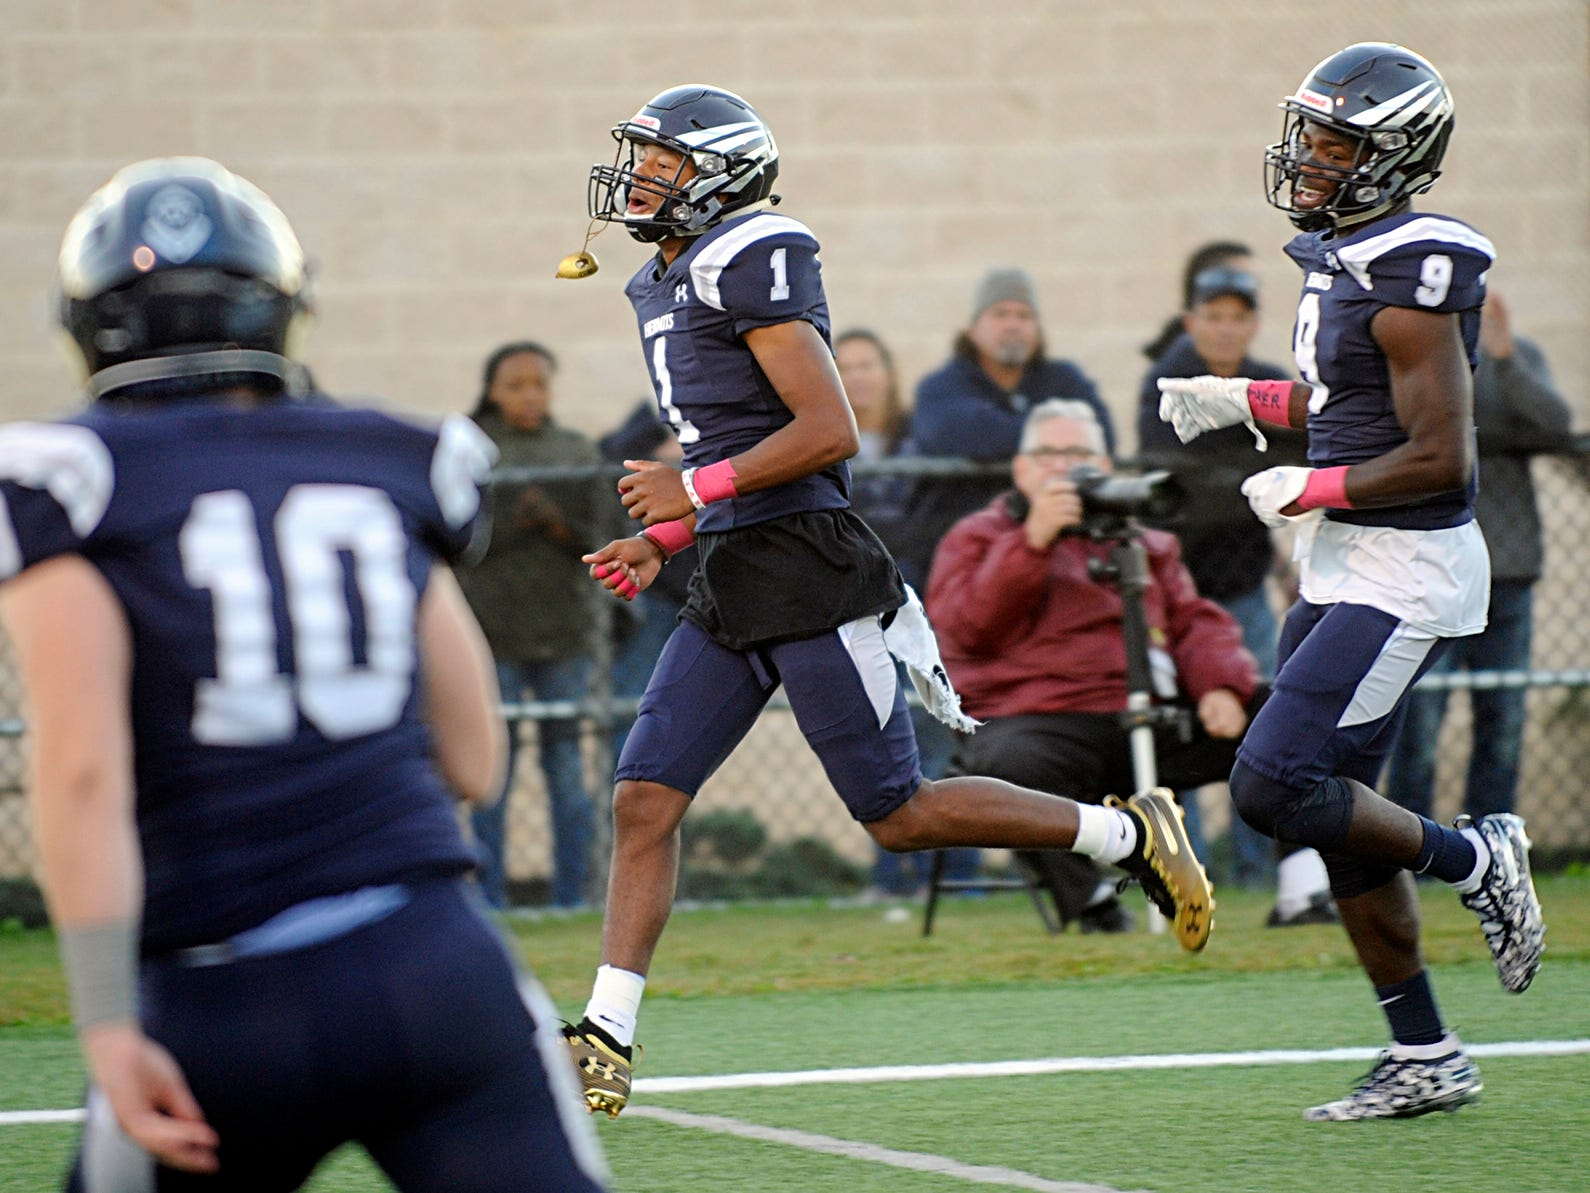 St. Augustine's Justin Shorter celebrates after scoring a touchdown against Holy Spirit. The Hermits defeated the visiting Spartans, 27-14 on Friday, October 12, 2018.